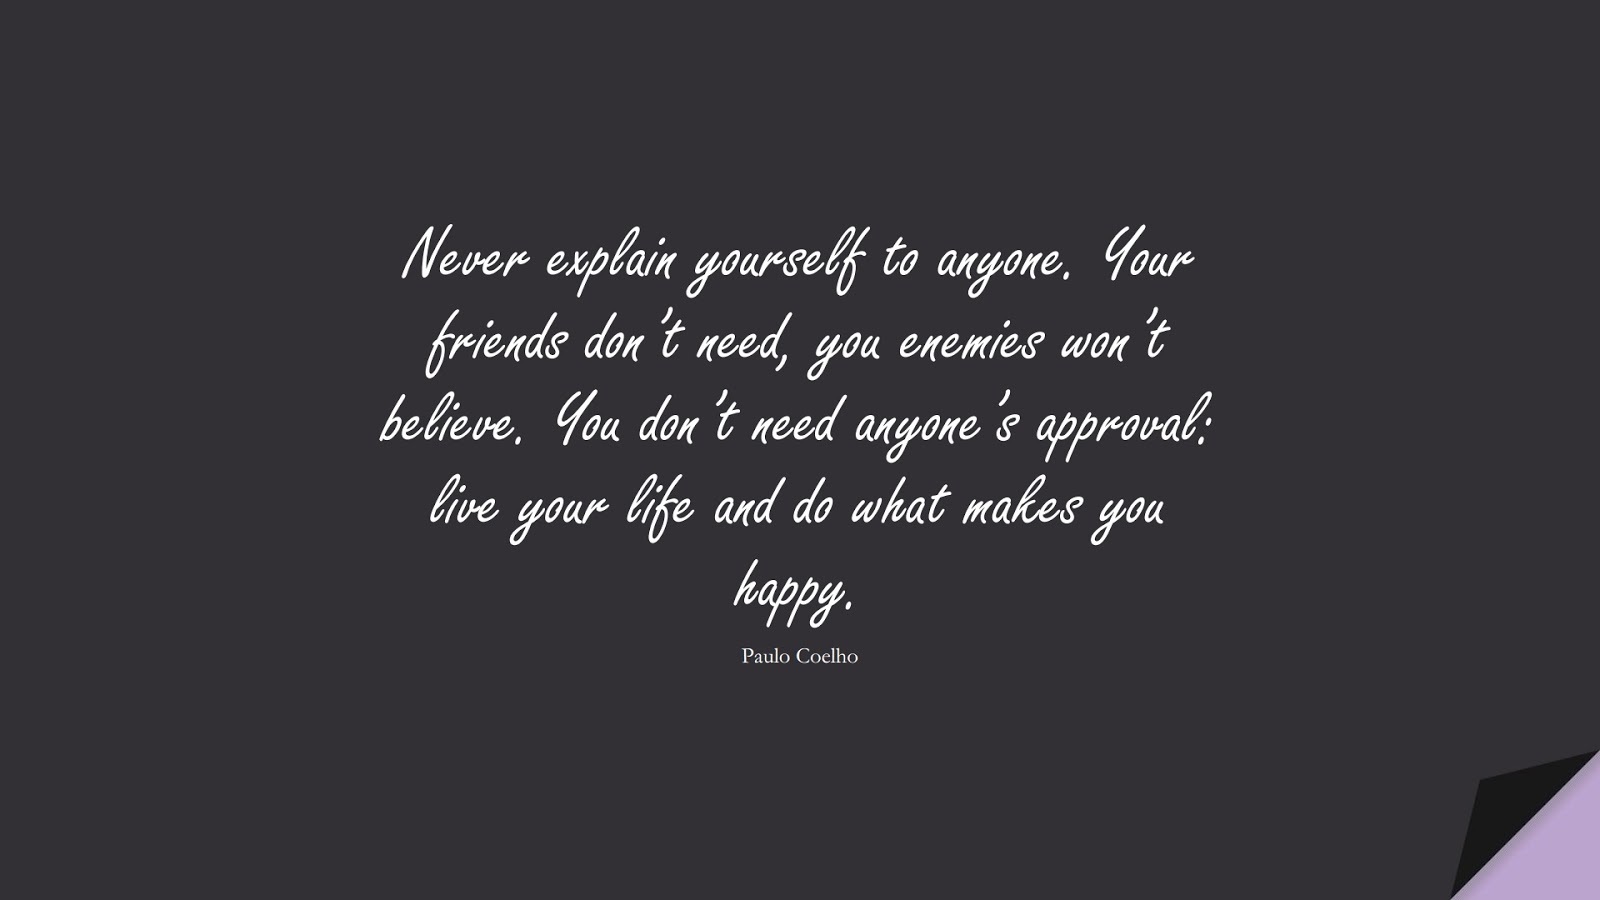 Never explain yourself to anyone. Your friends don't need, you enemies won't believe. You don't need anyone's approval: live your life and do what makes you happy. (Paulo Coelho);  #LoveYourselfQuotes